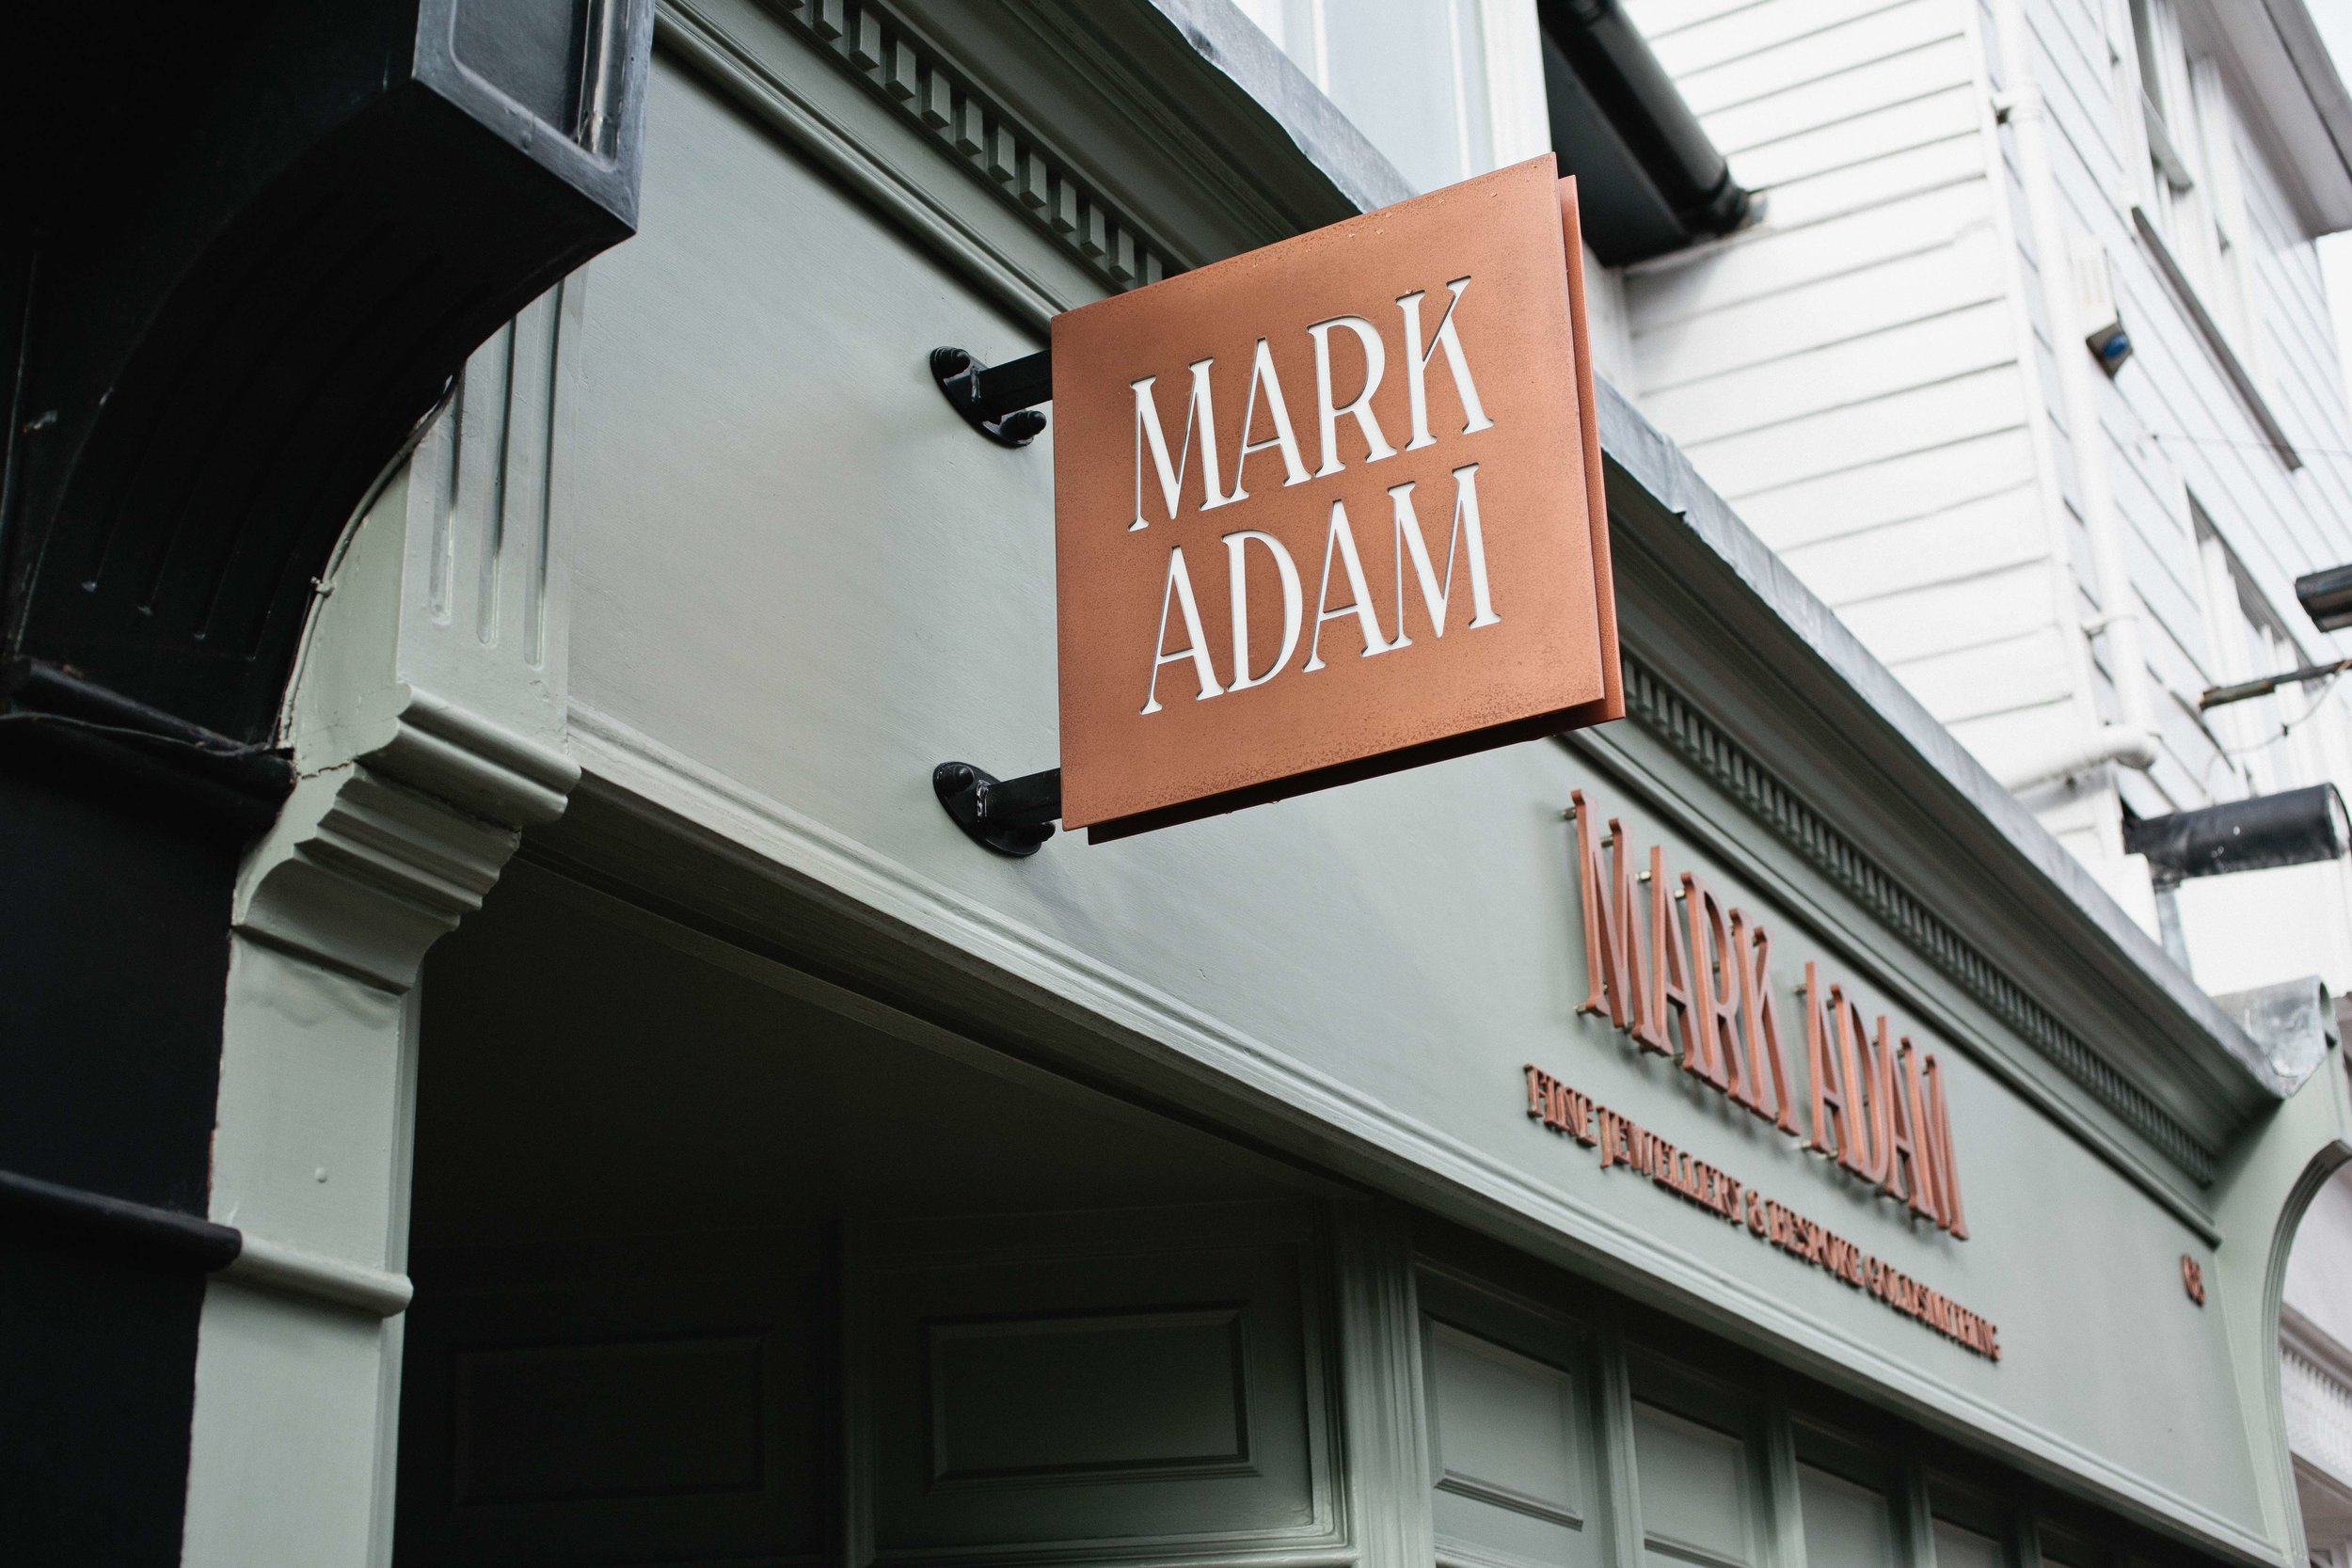 Shop signage design for MarkAdam Jewellers, Tunbridge Wells, Kent